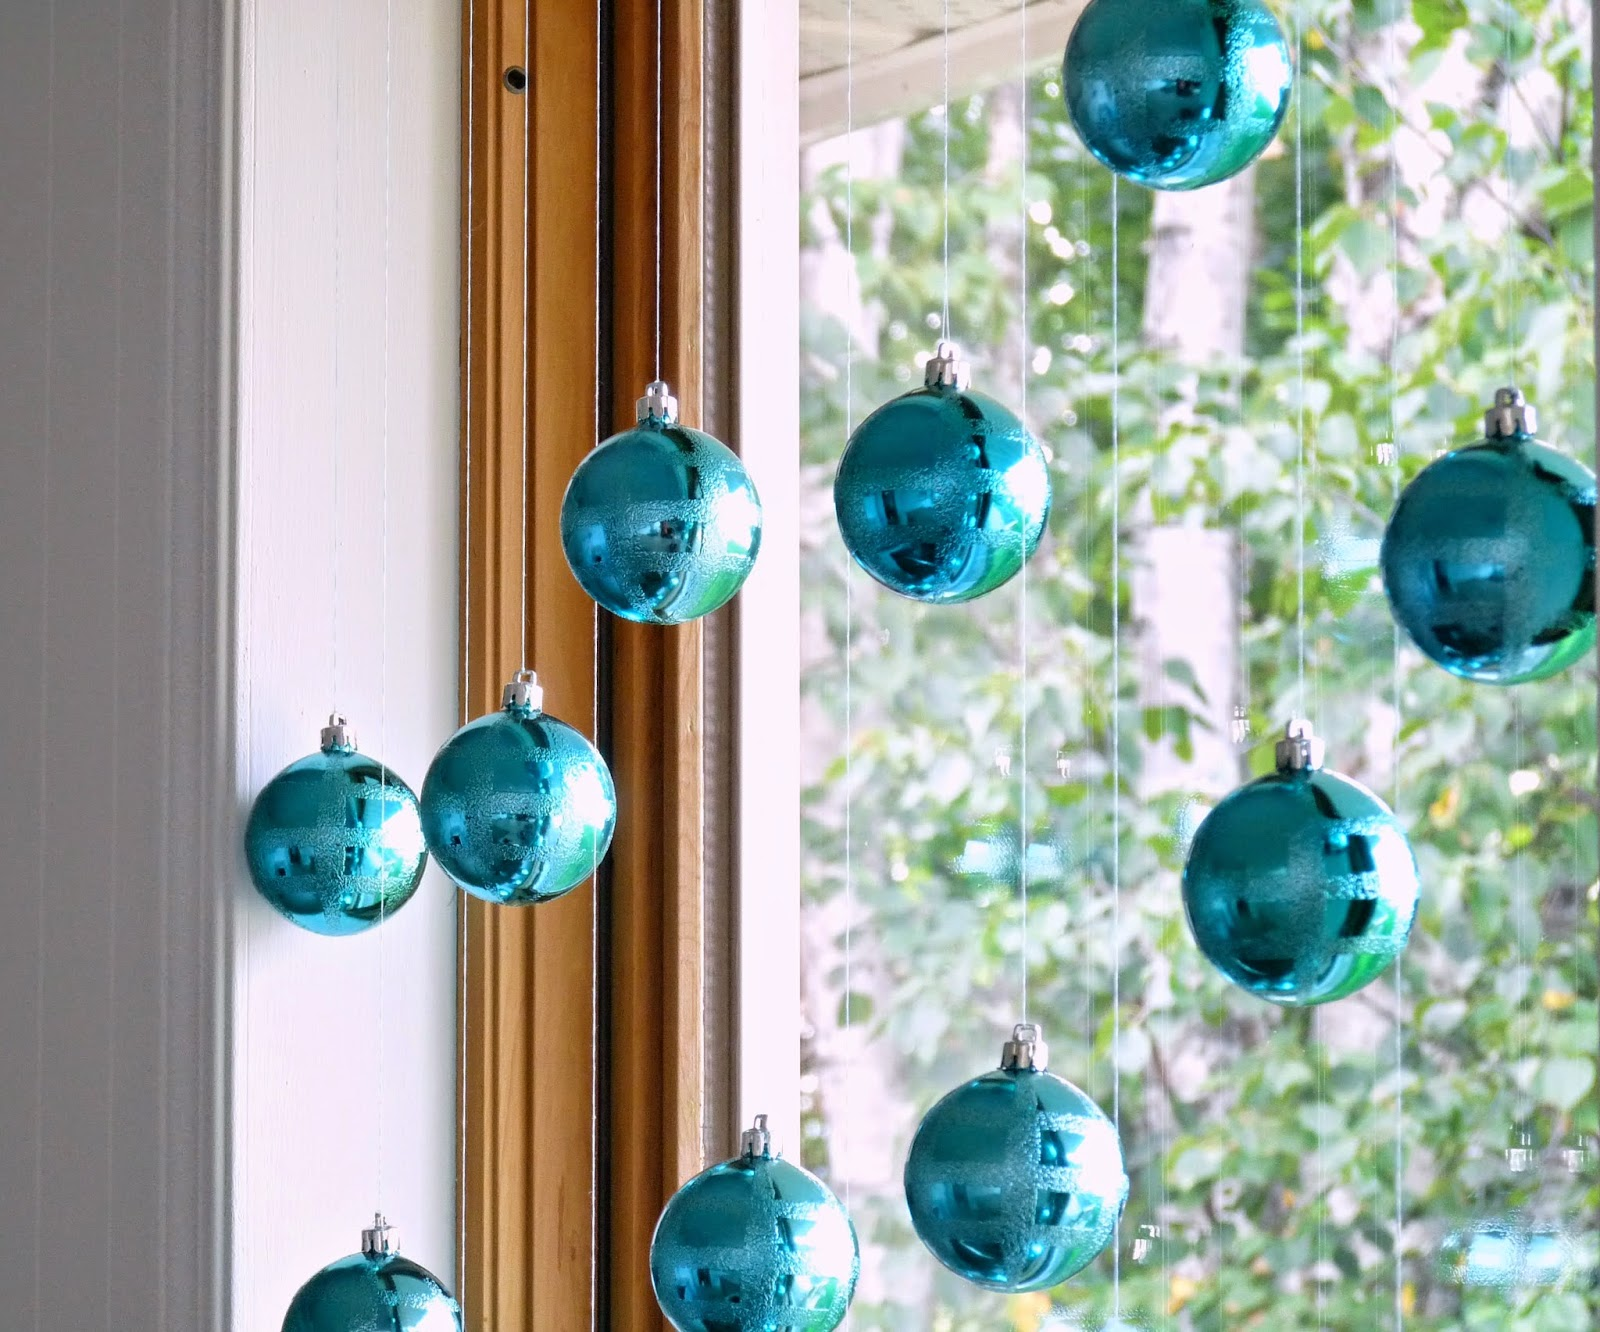 Aqua ornaments in window